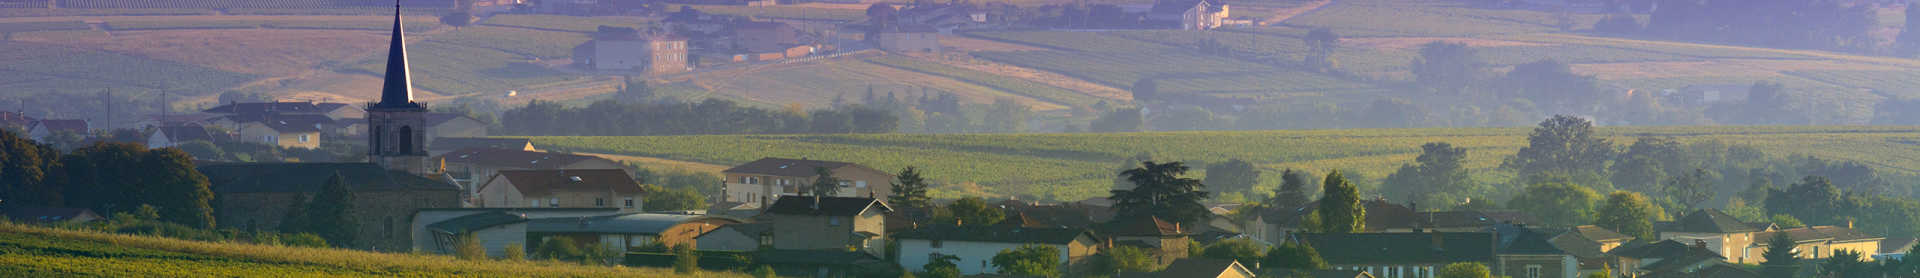 Image for Cote de Beaune Wine Cote d'Or, Burgundy content section